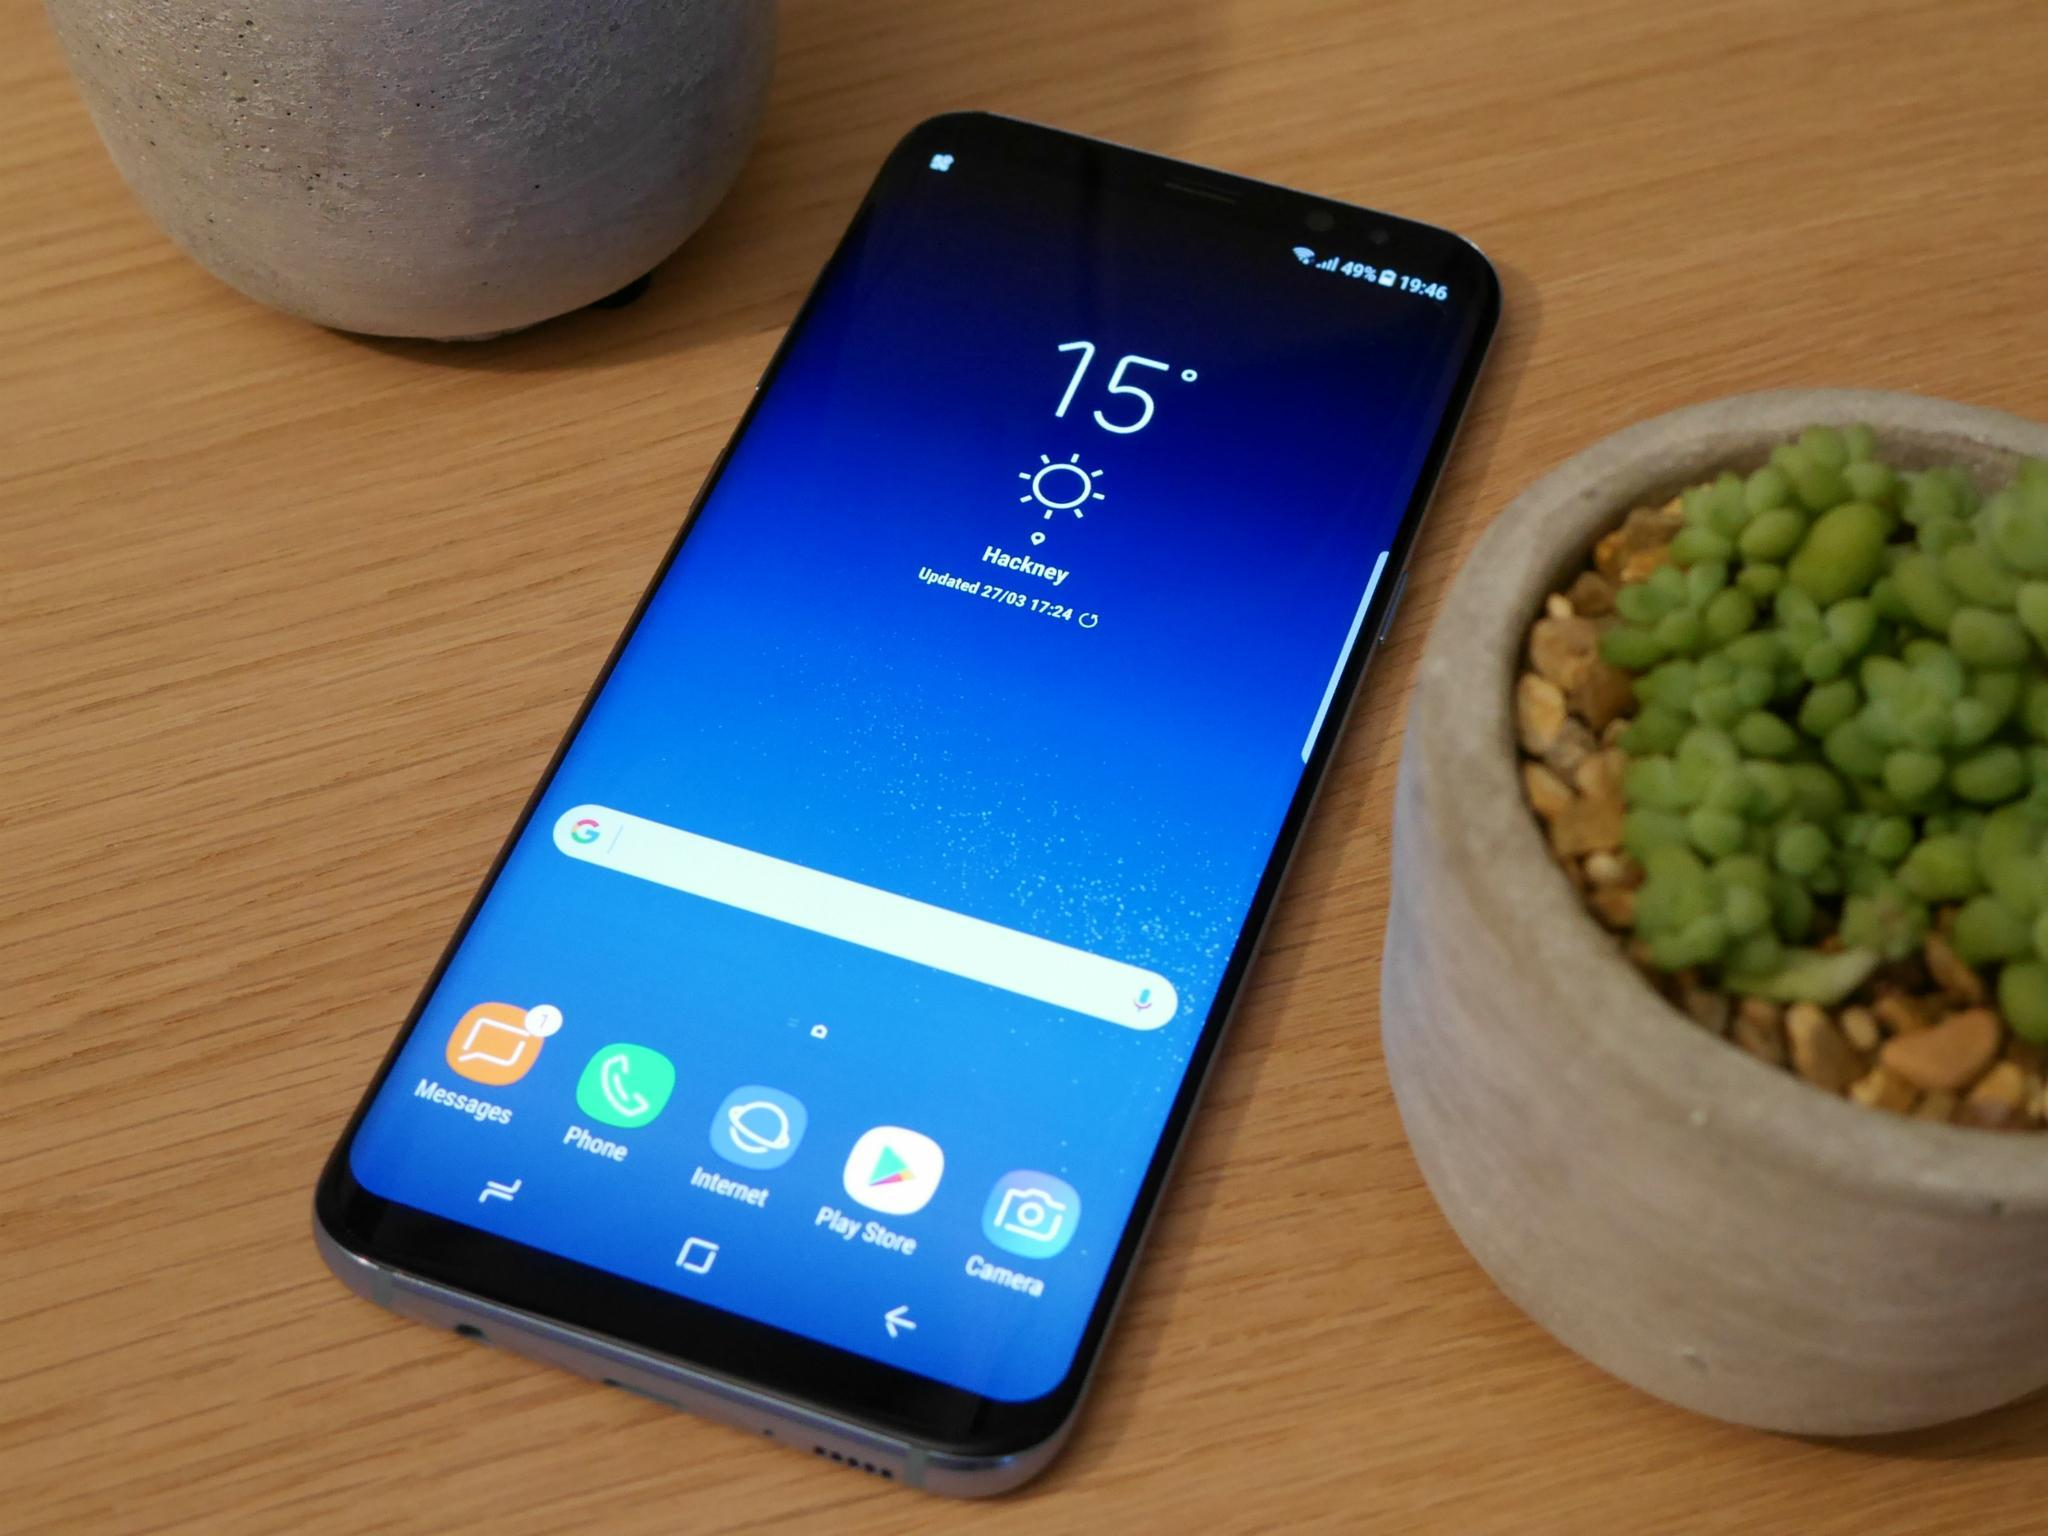 samsung galaxy s8 review it 39 s the best android smartphone yet the independent. Black Bedroom Furniture Sets. Home Design Ideas